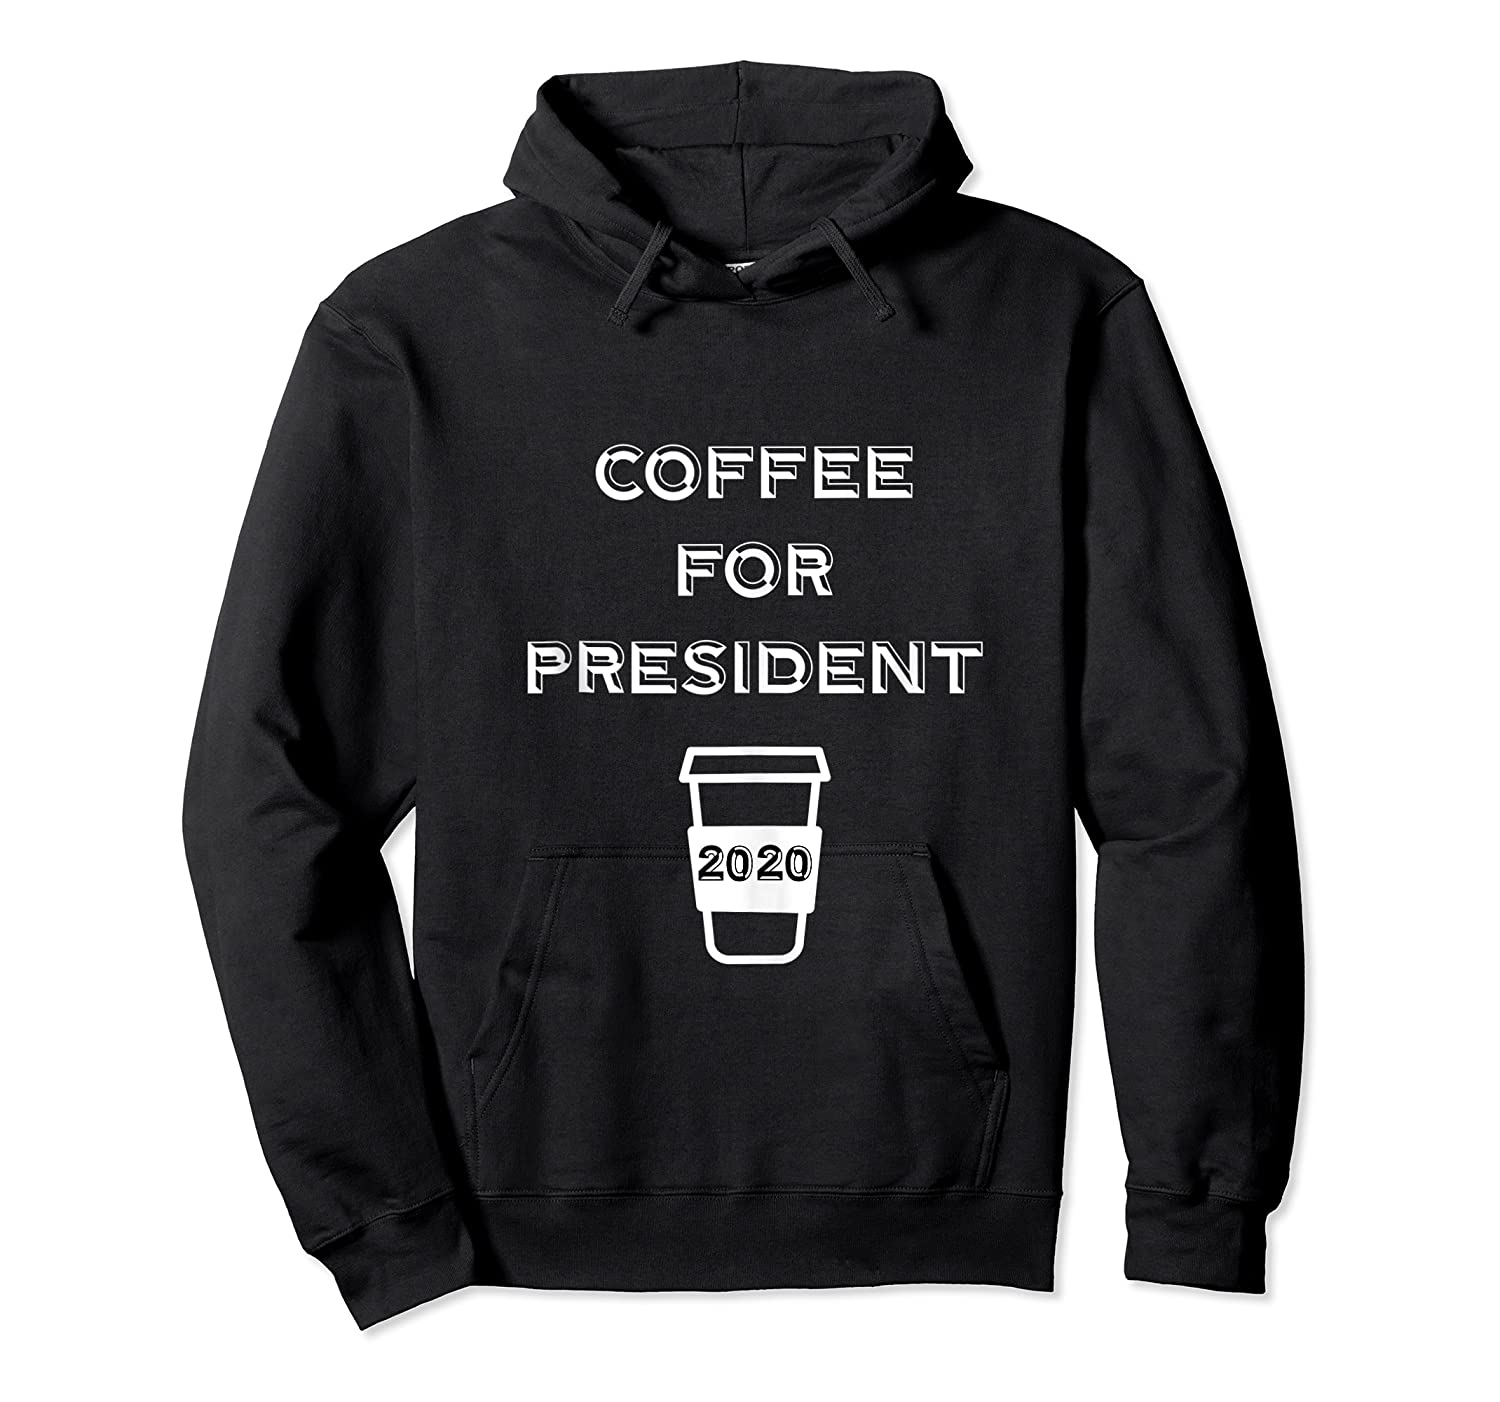 Coffee For President 2020 Funny Presidential Election Day Tank Top Shirts Unisex Pullover Hoodie